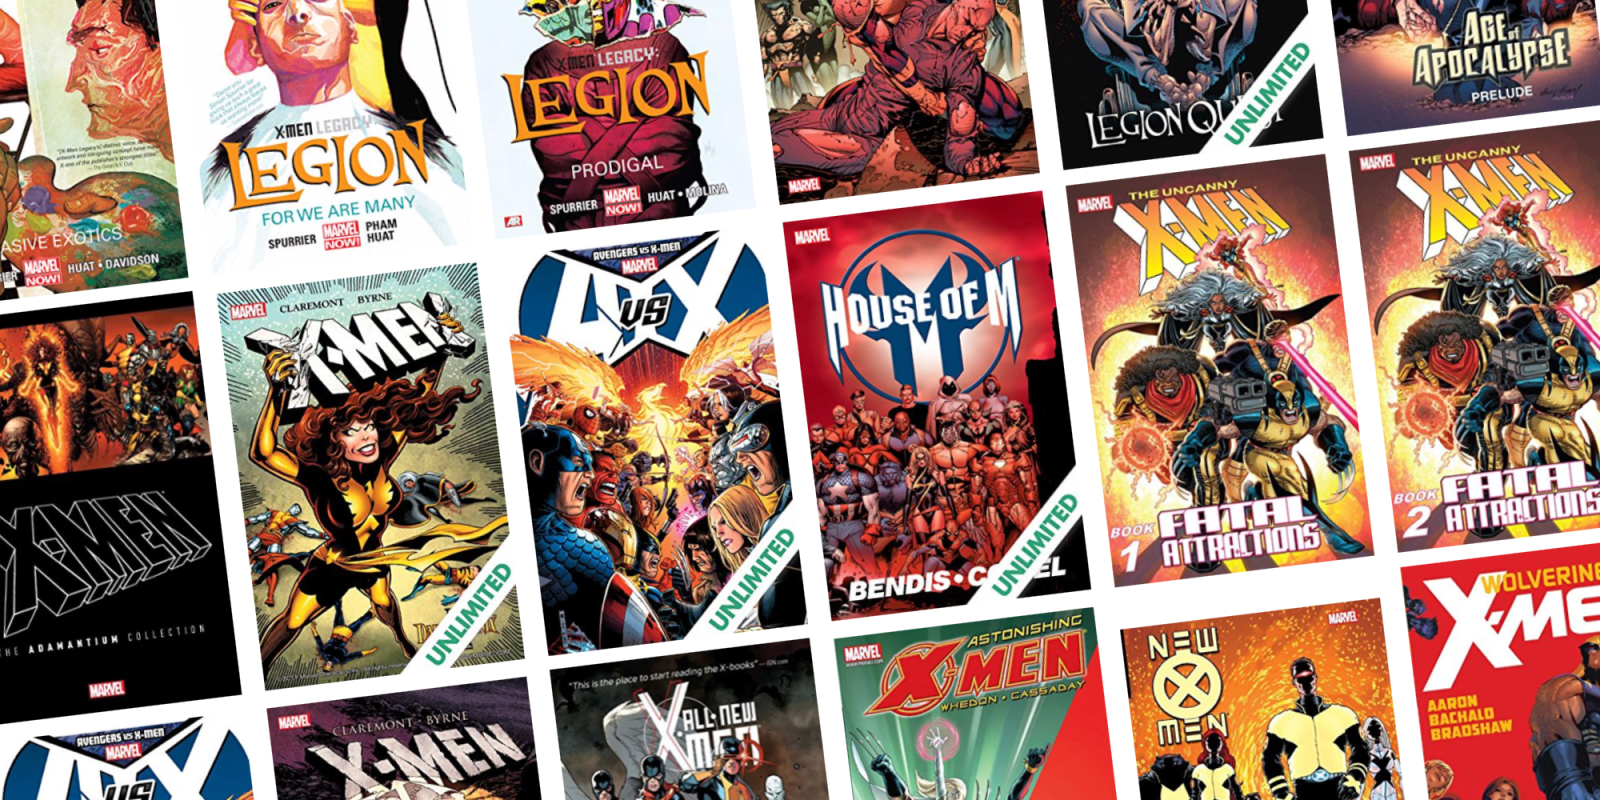 Take up to 70% off X-Men and Legion digital releases at ComiXology from $1